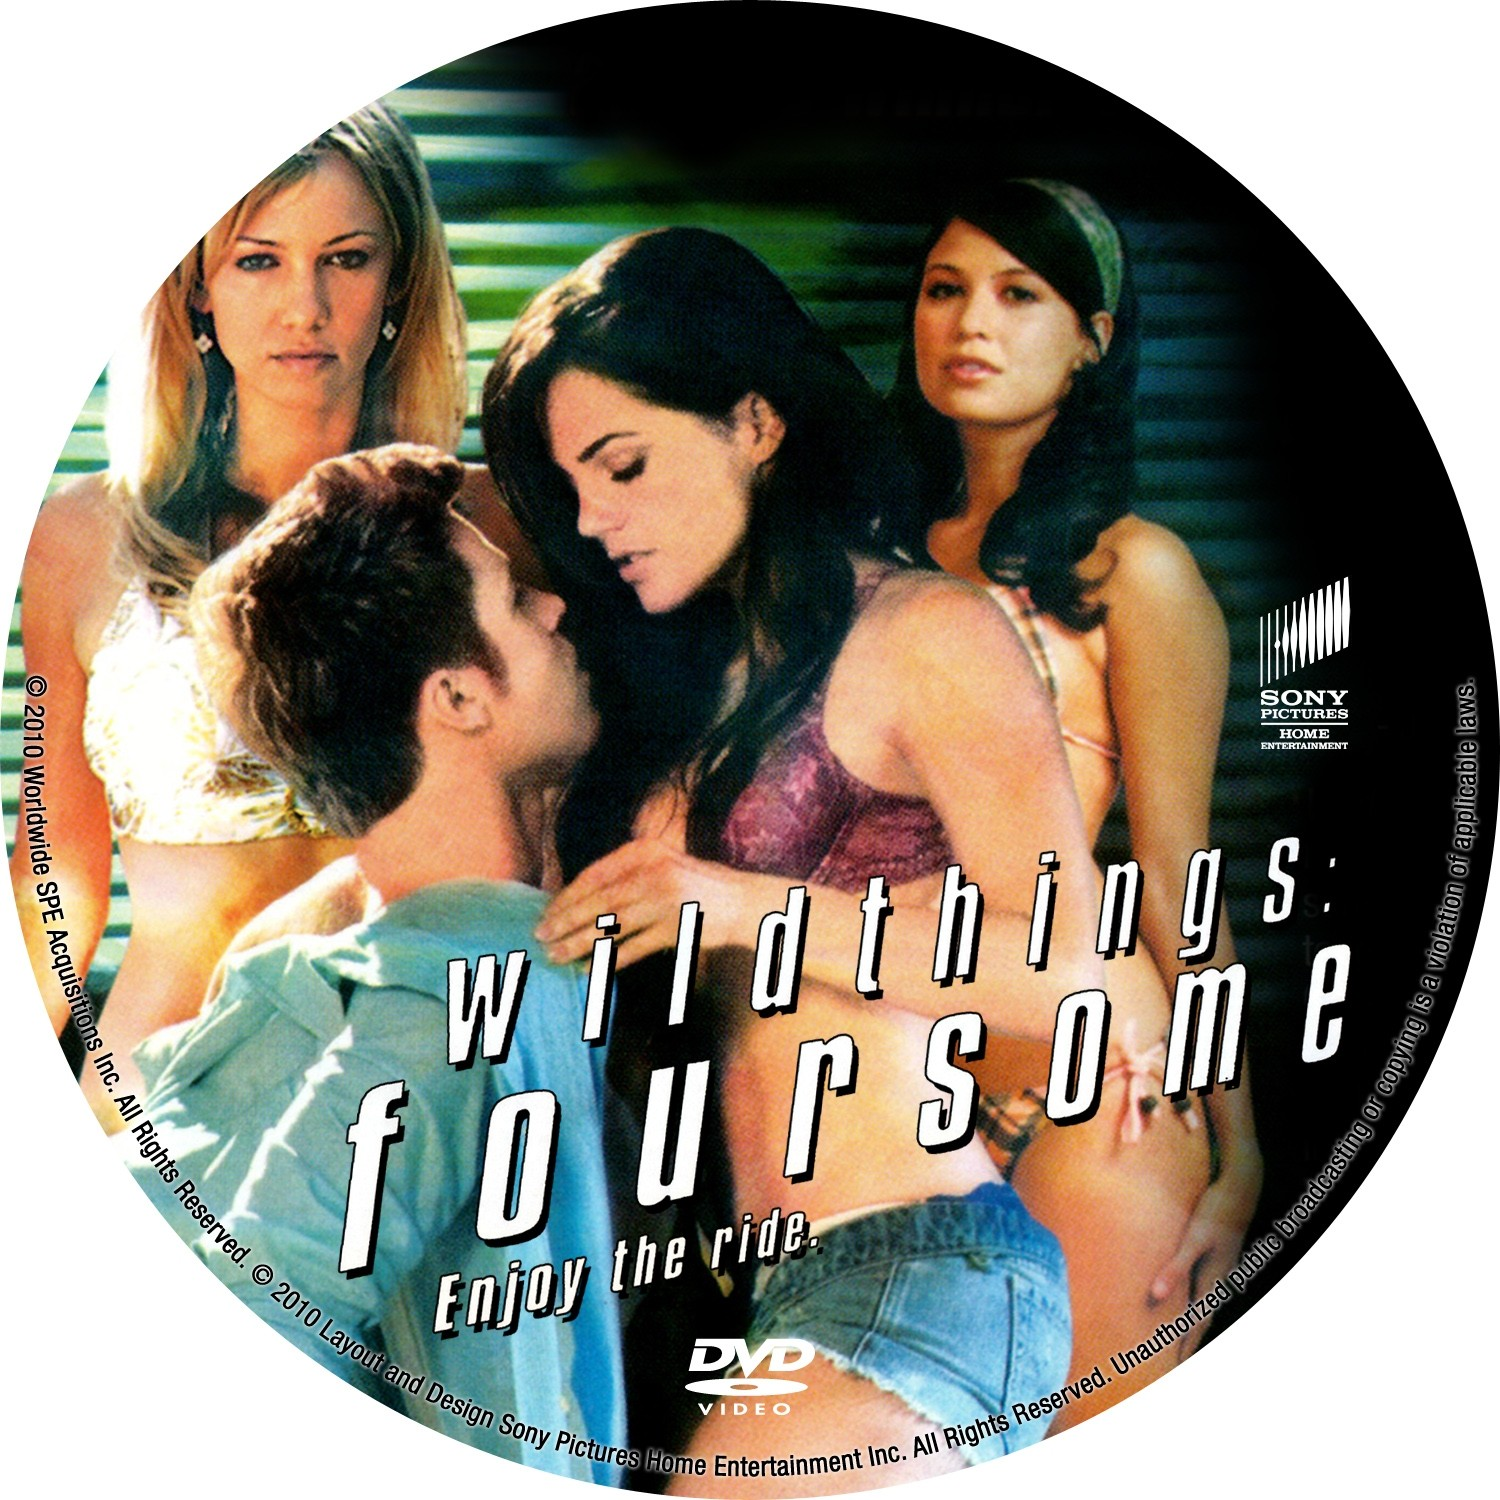 Hedonism pictures wild thing foursome full movie